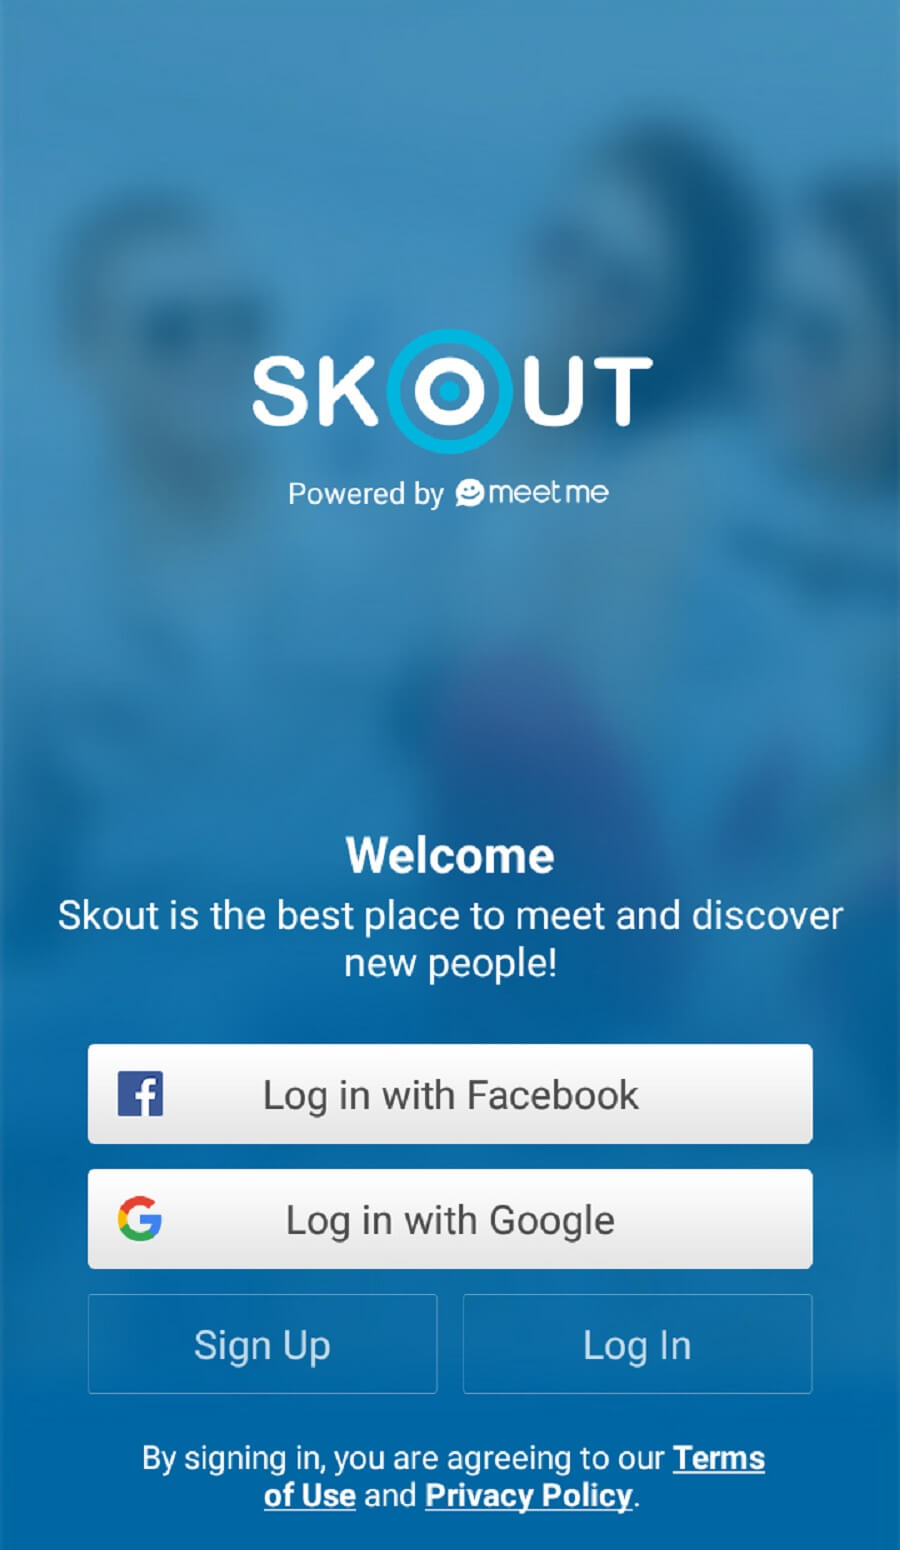 Skout Review September 2019 - Scam or good for finding true